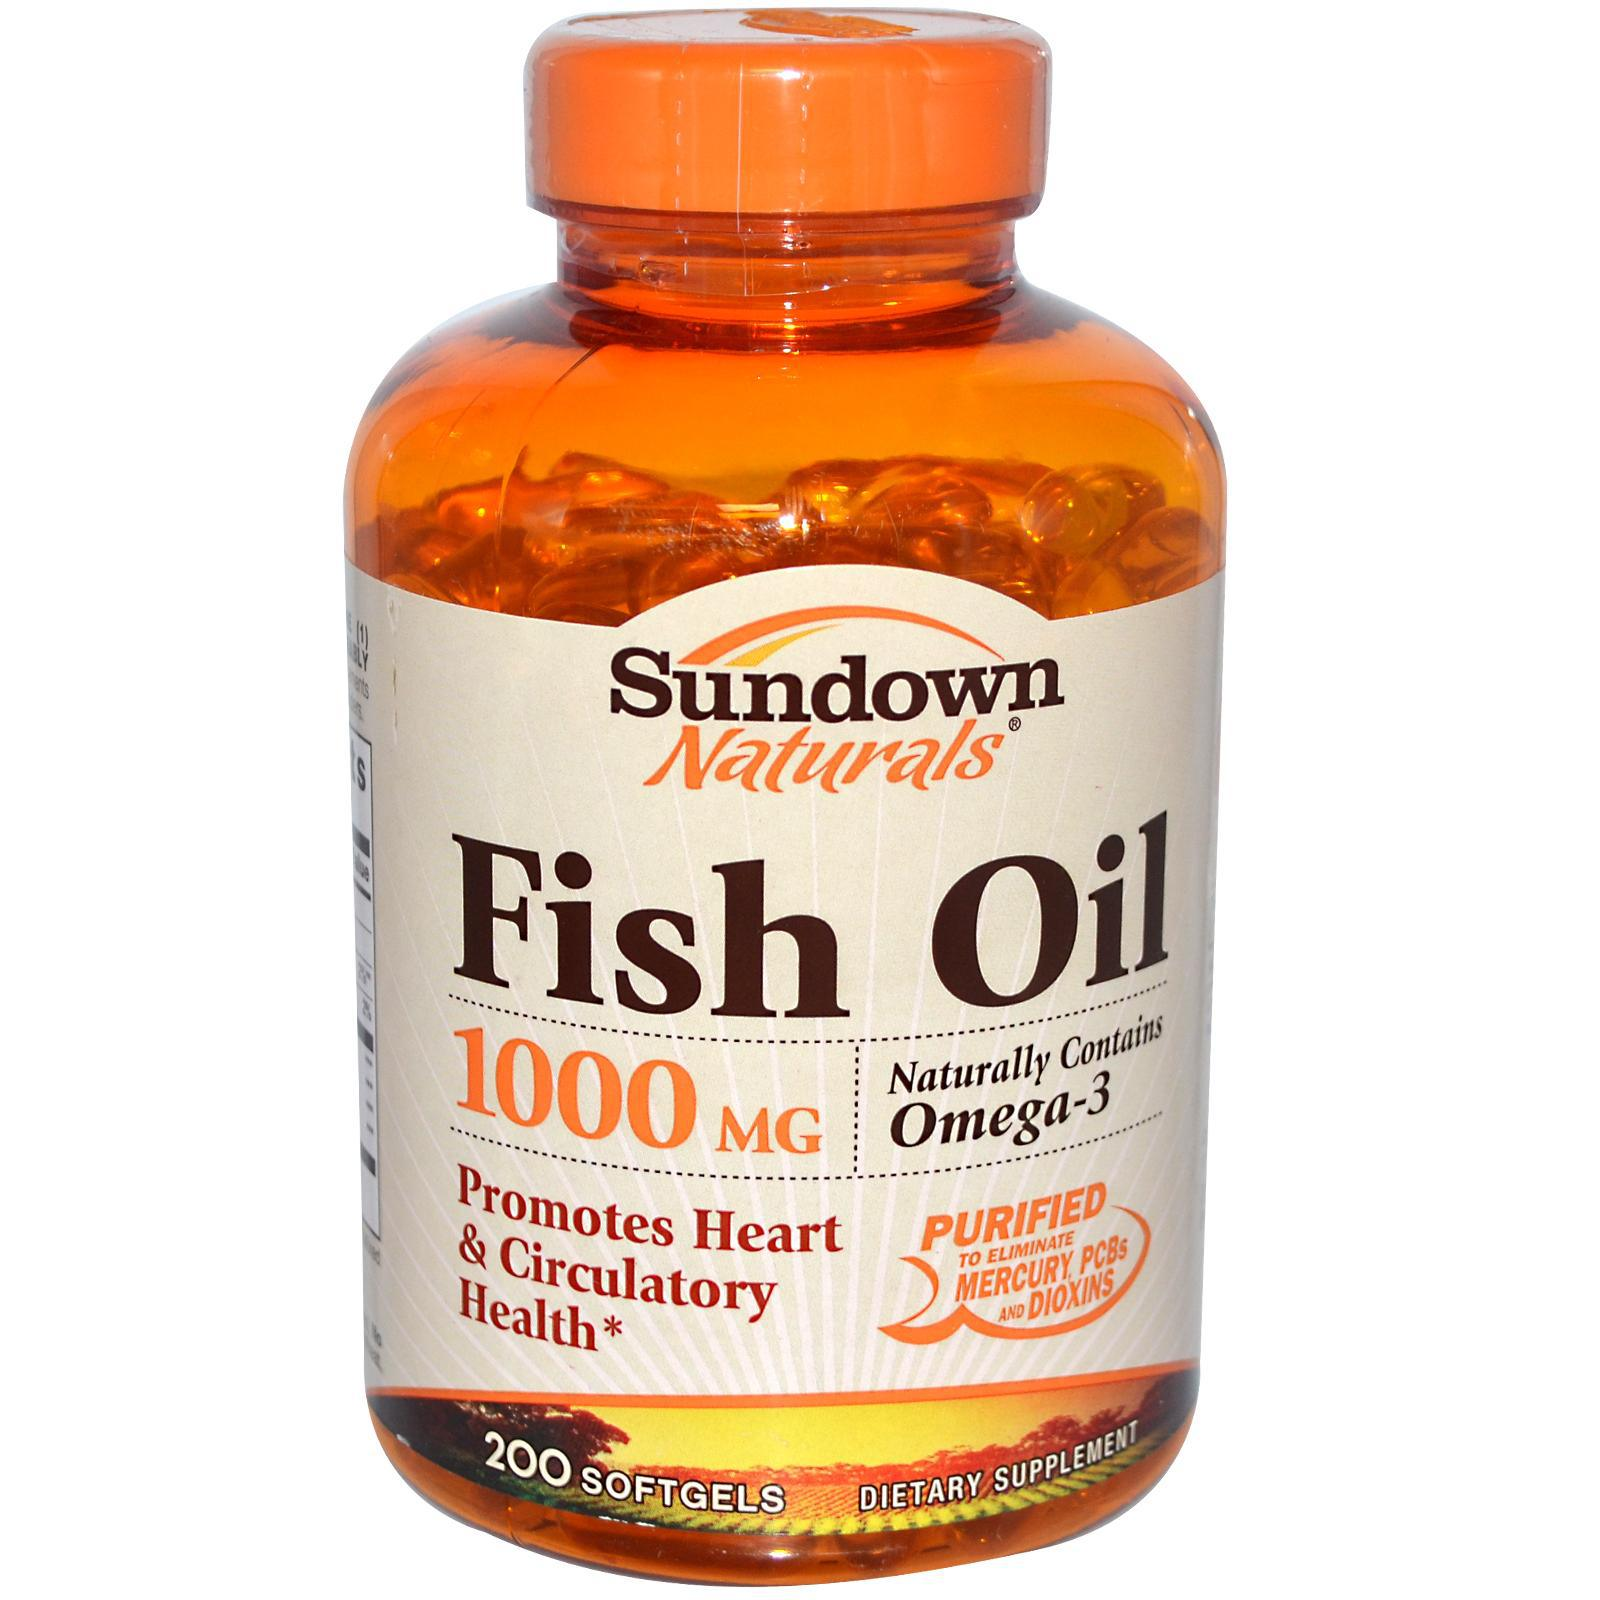 Top 10 best fish oil supplements currently for Fish oil pills